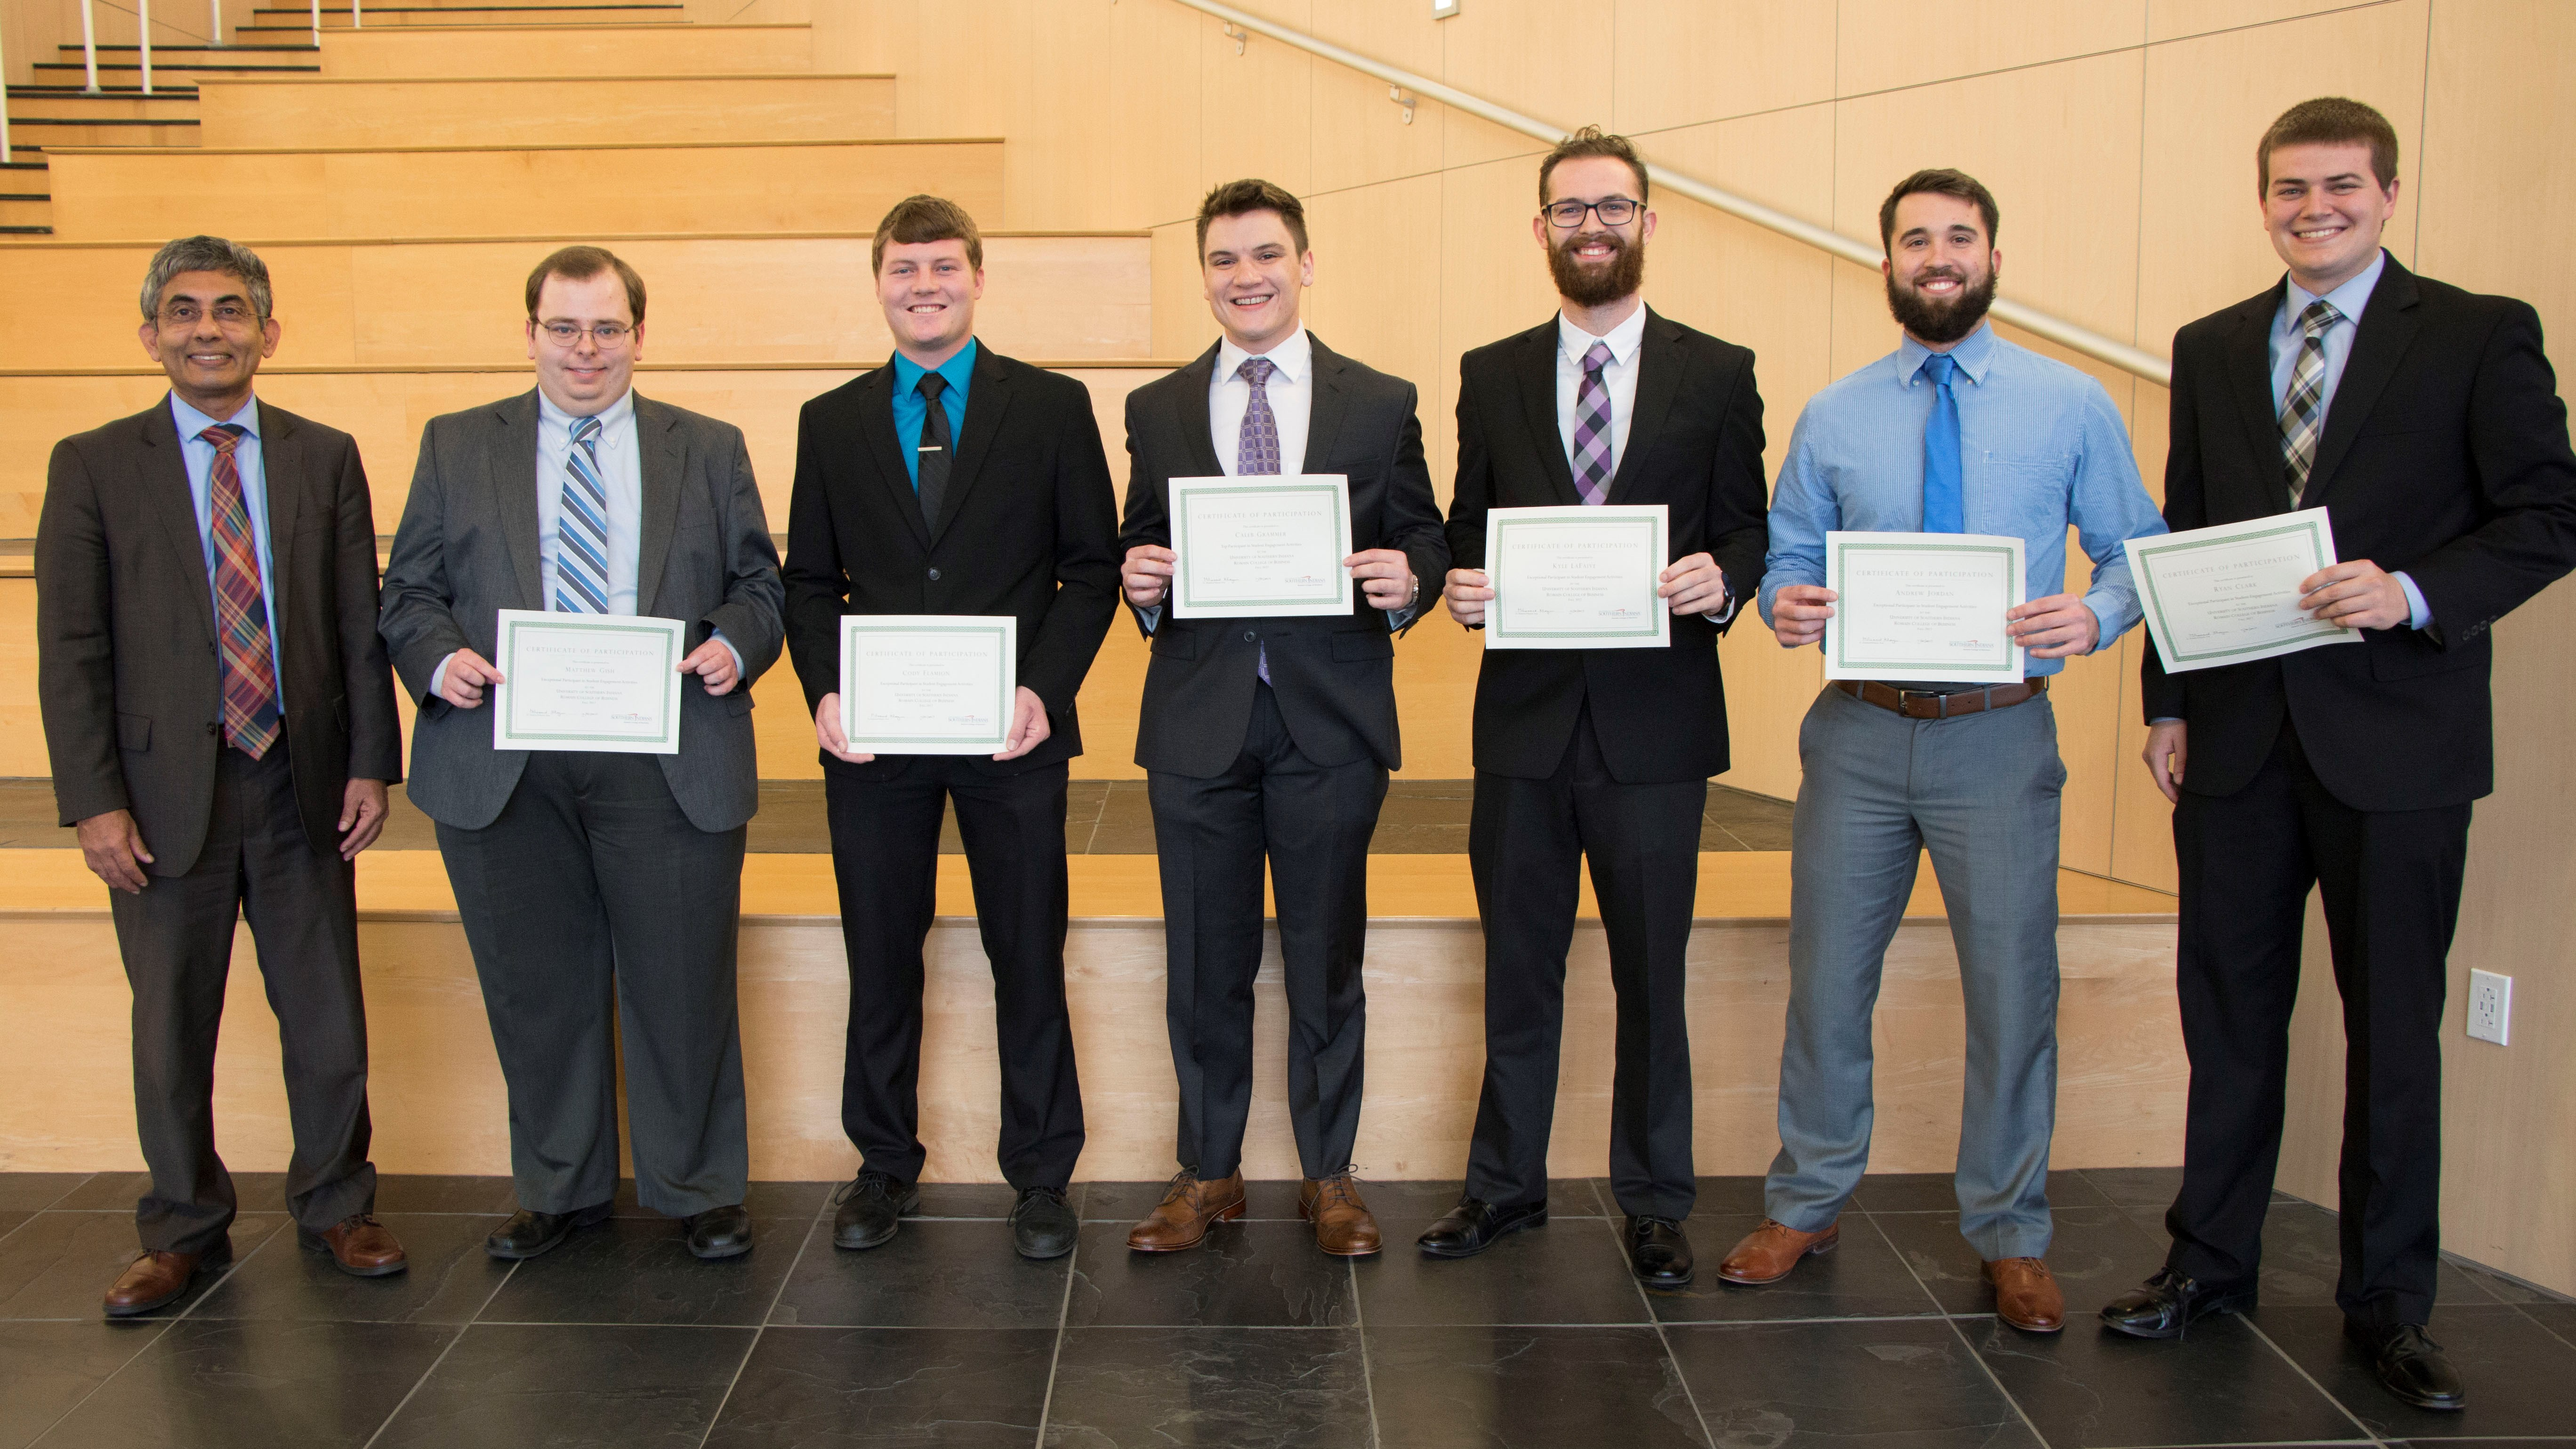 Romain College Fall 2017 Top Student Participants